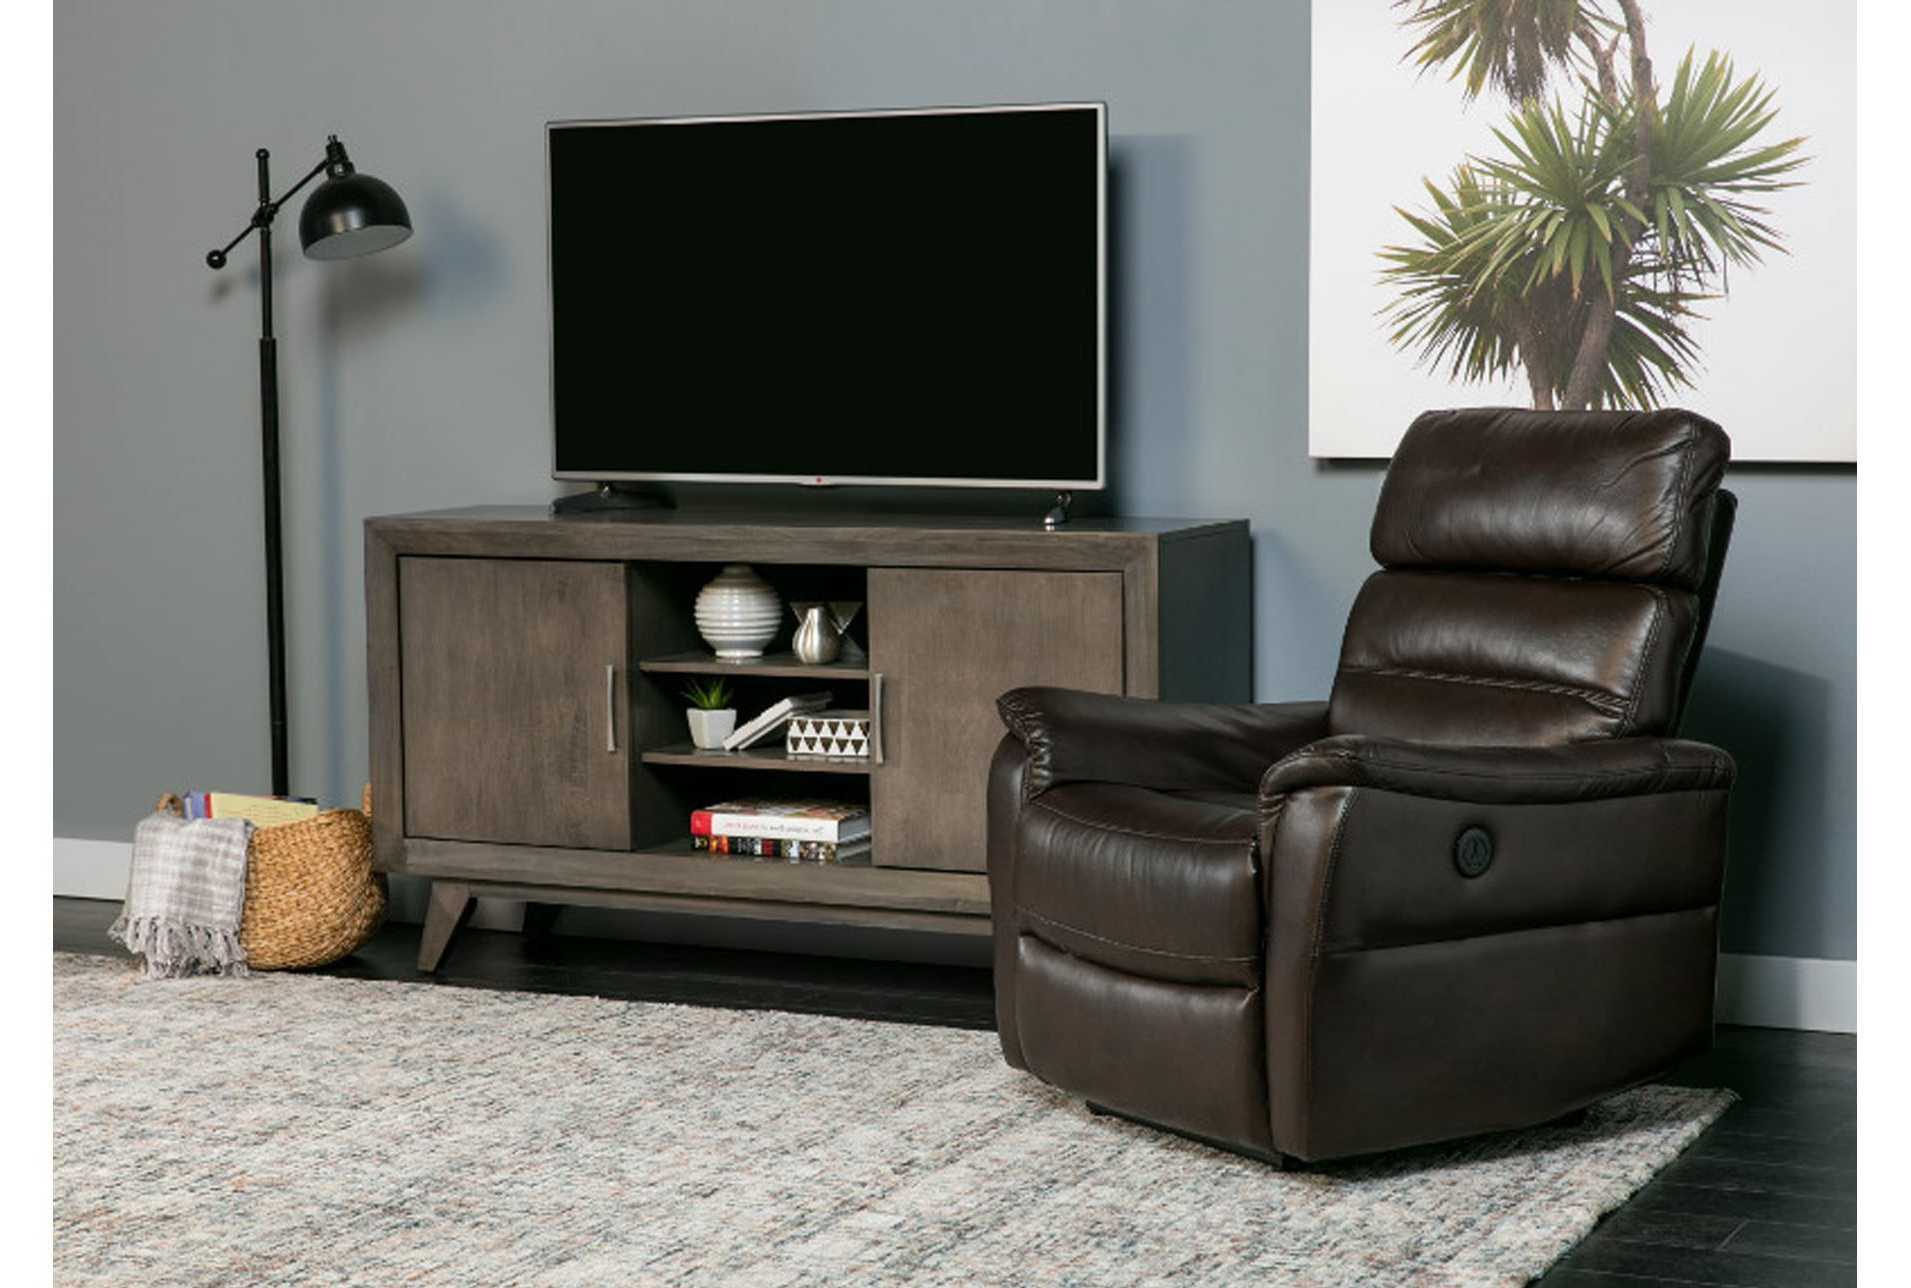 Abbott Driftwood 60 Inch Tv Stand | Sb Apt – Short List | 60 Inch For Abbott Driftwood 60 Inch Tv Stands (View 2 of 20)